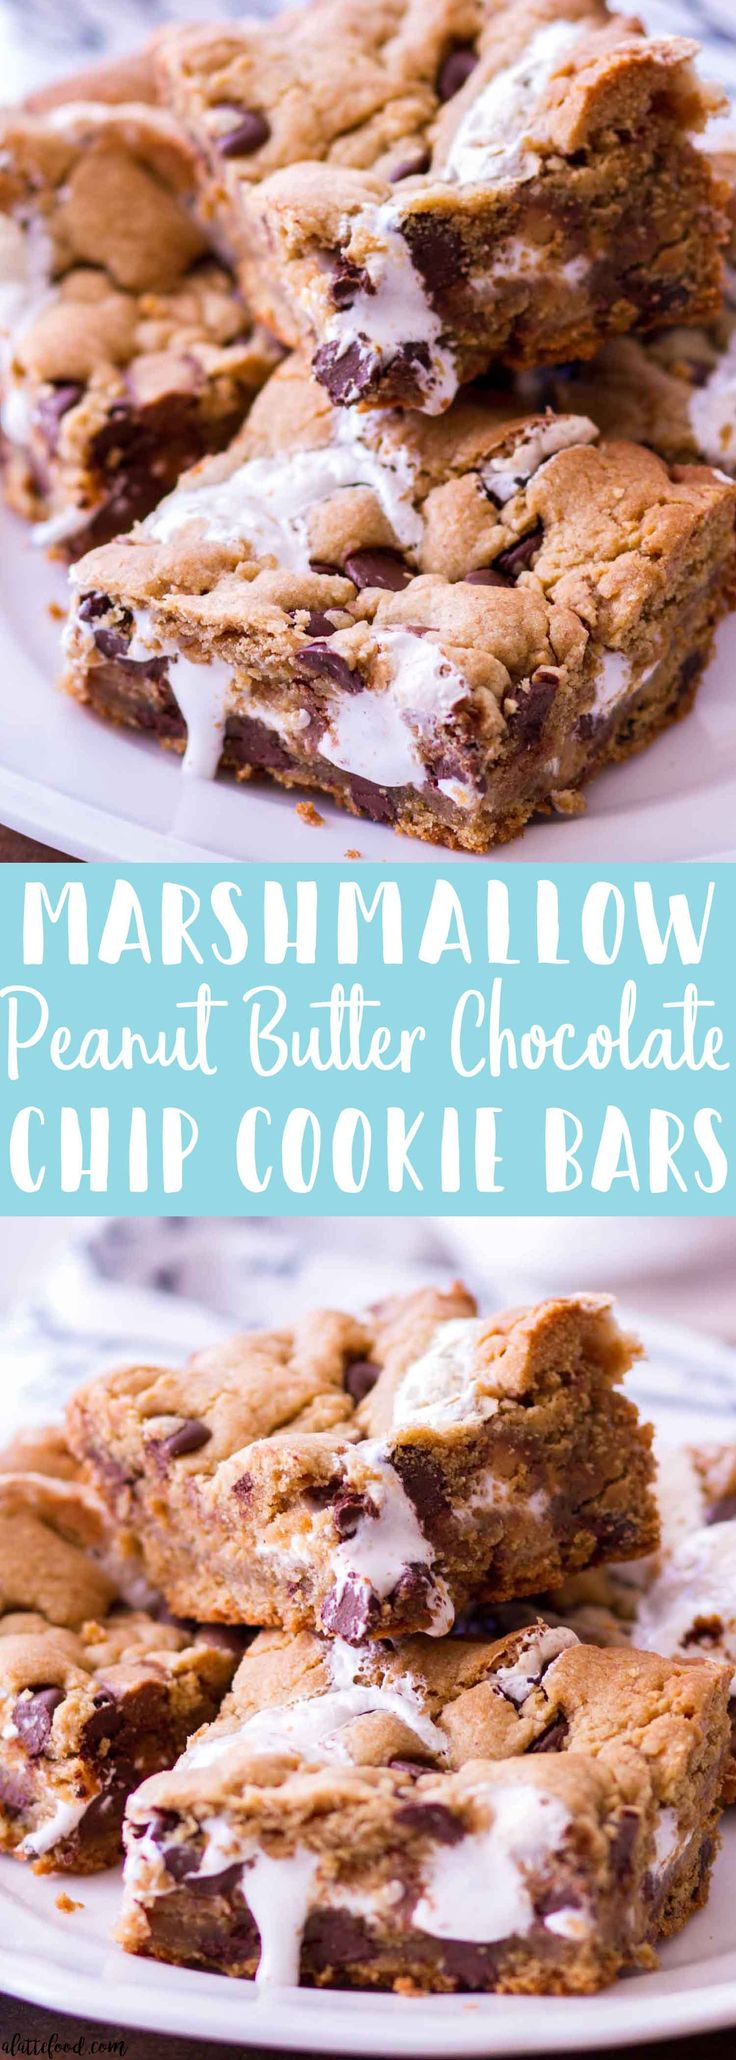 Marshmallow Peanut Butter Chocolate Chip Cookie Bars